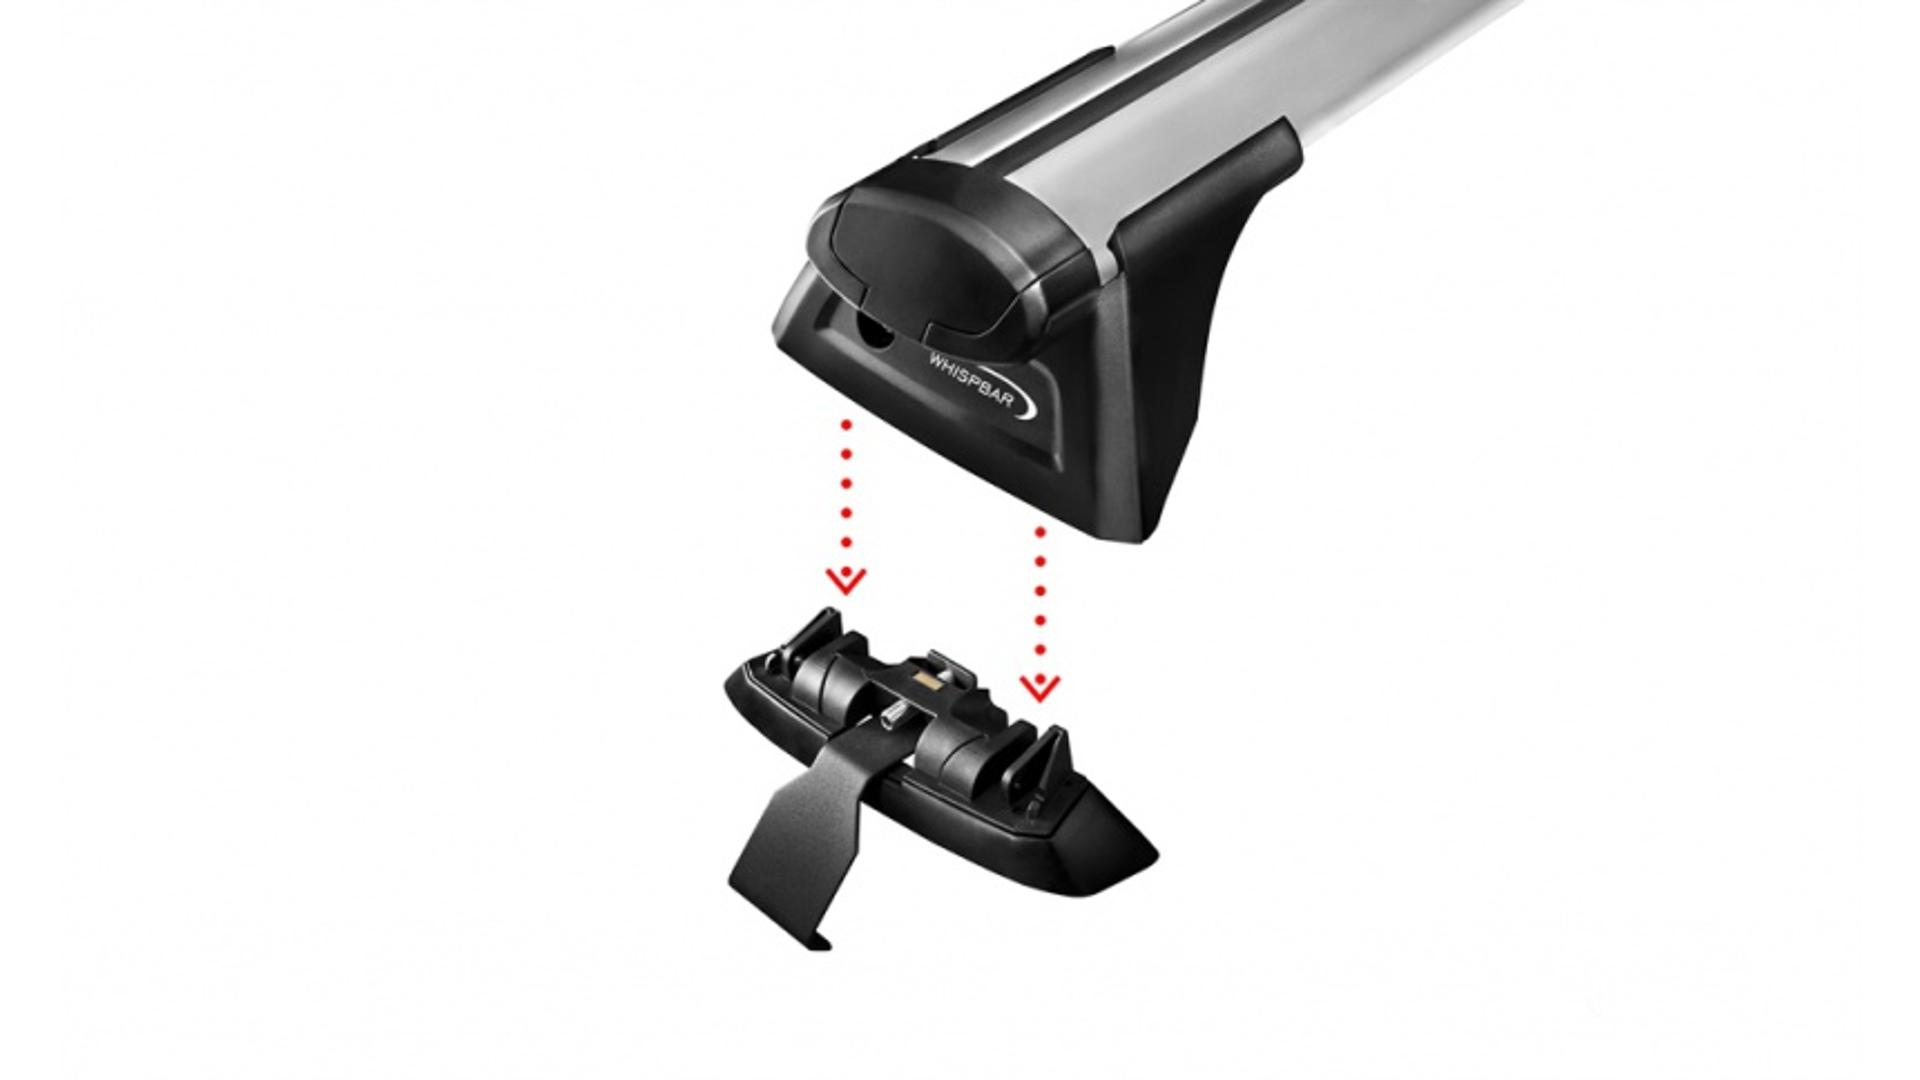 Whispbar montážní sada - Clamp Mount - K1061W